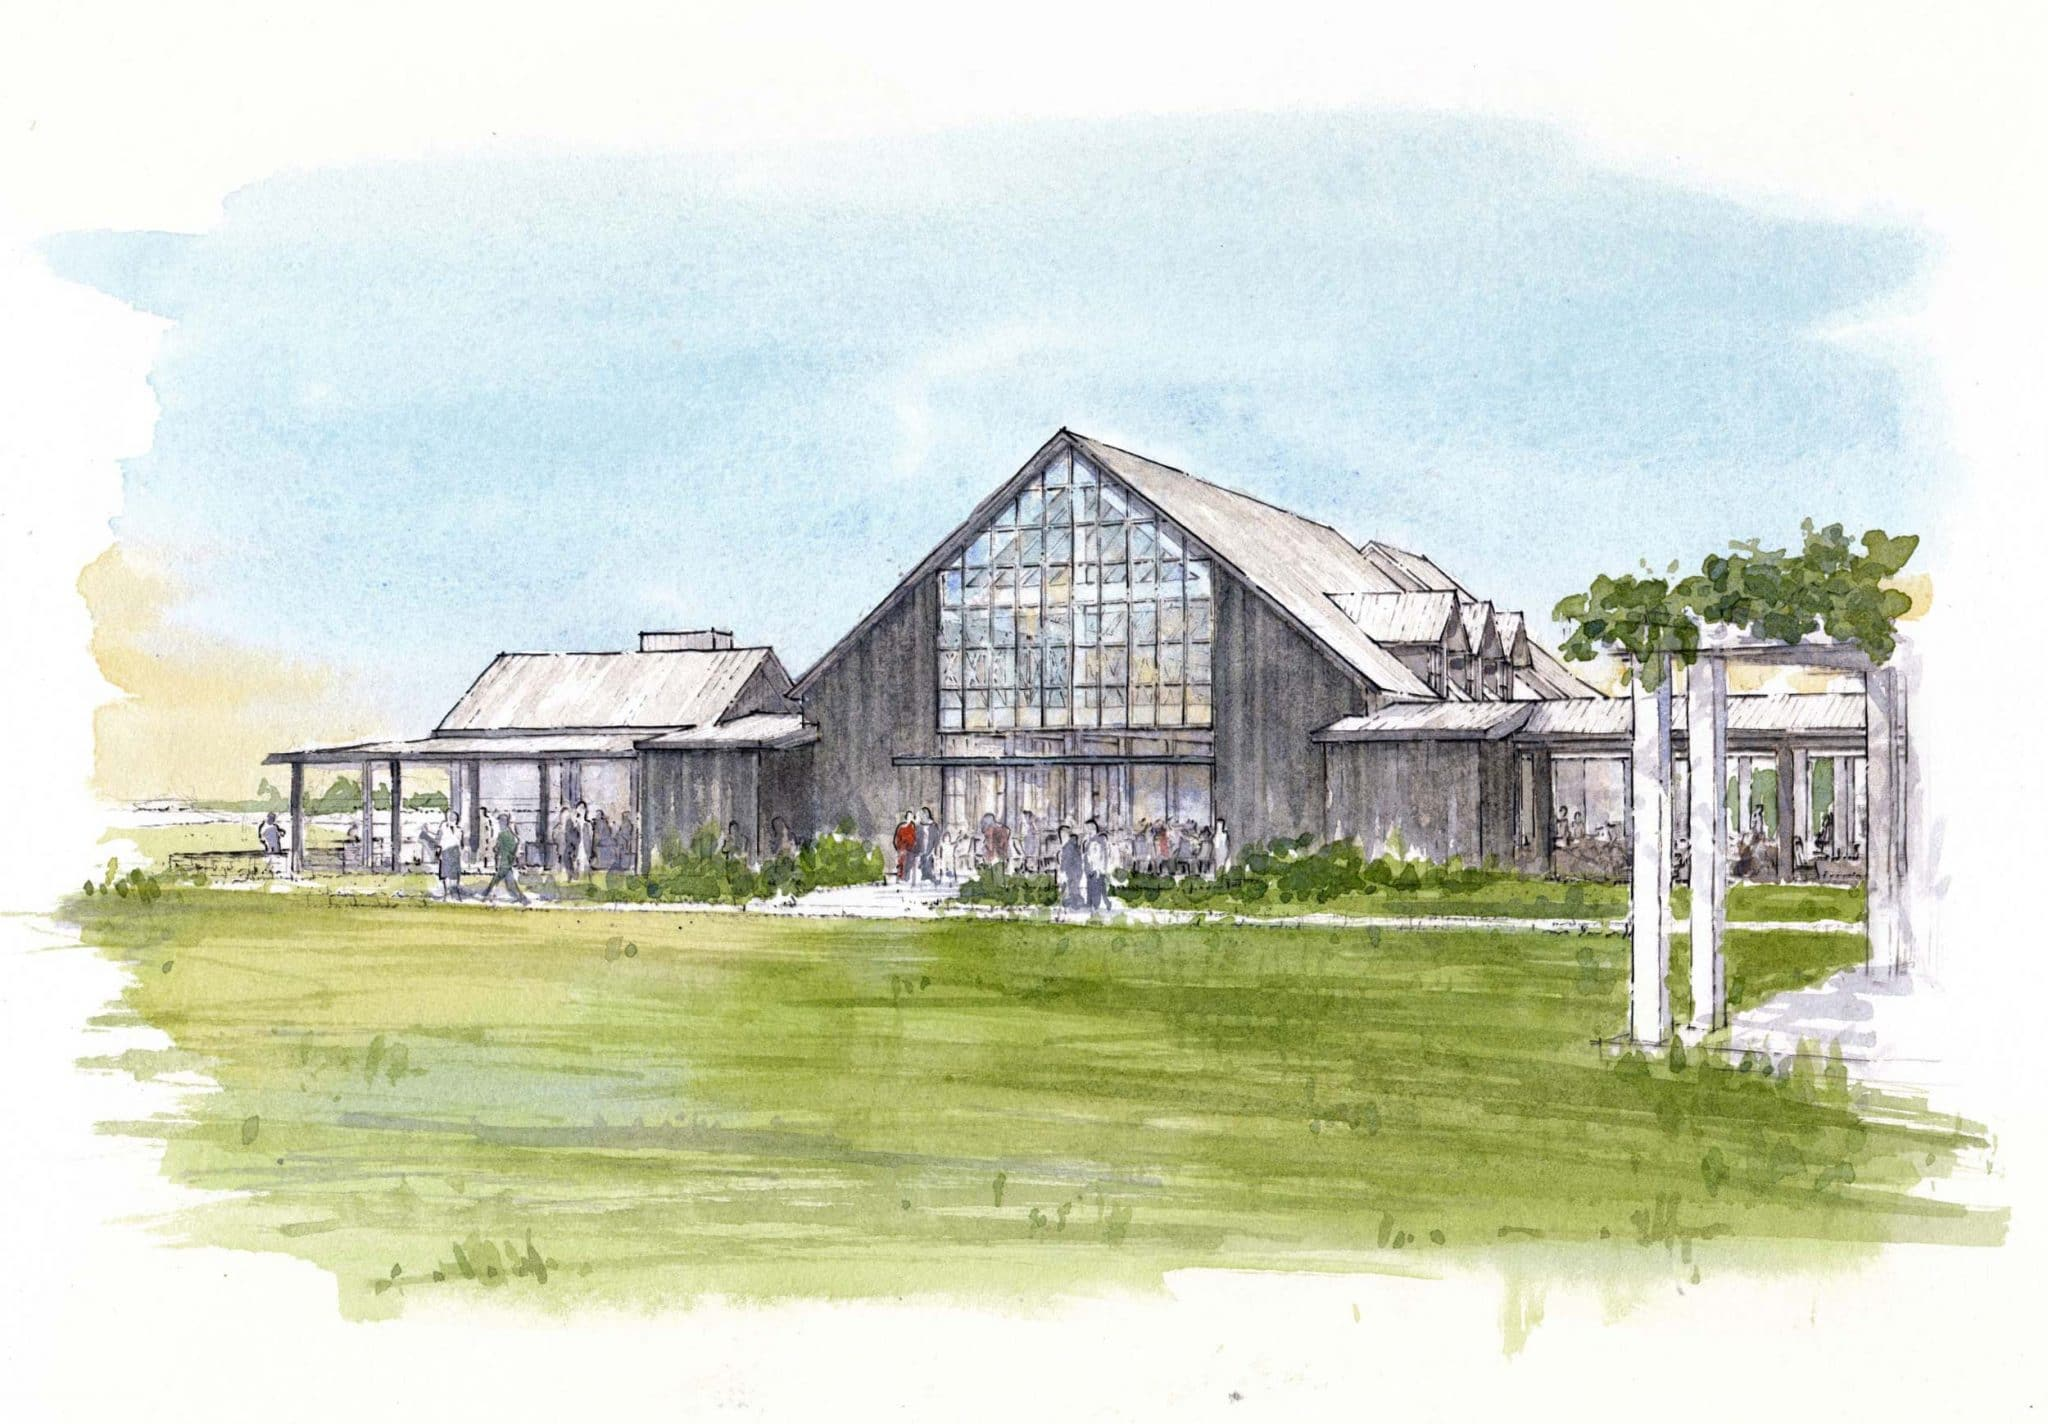 rendering of the hall event space at kiawah river development